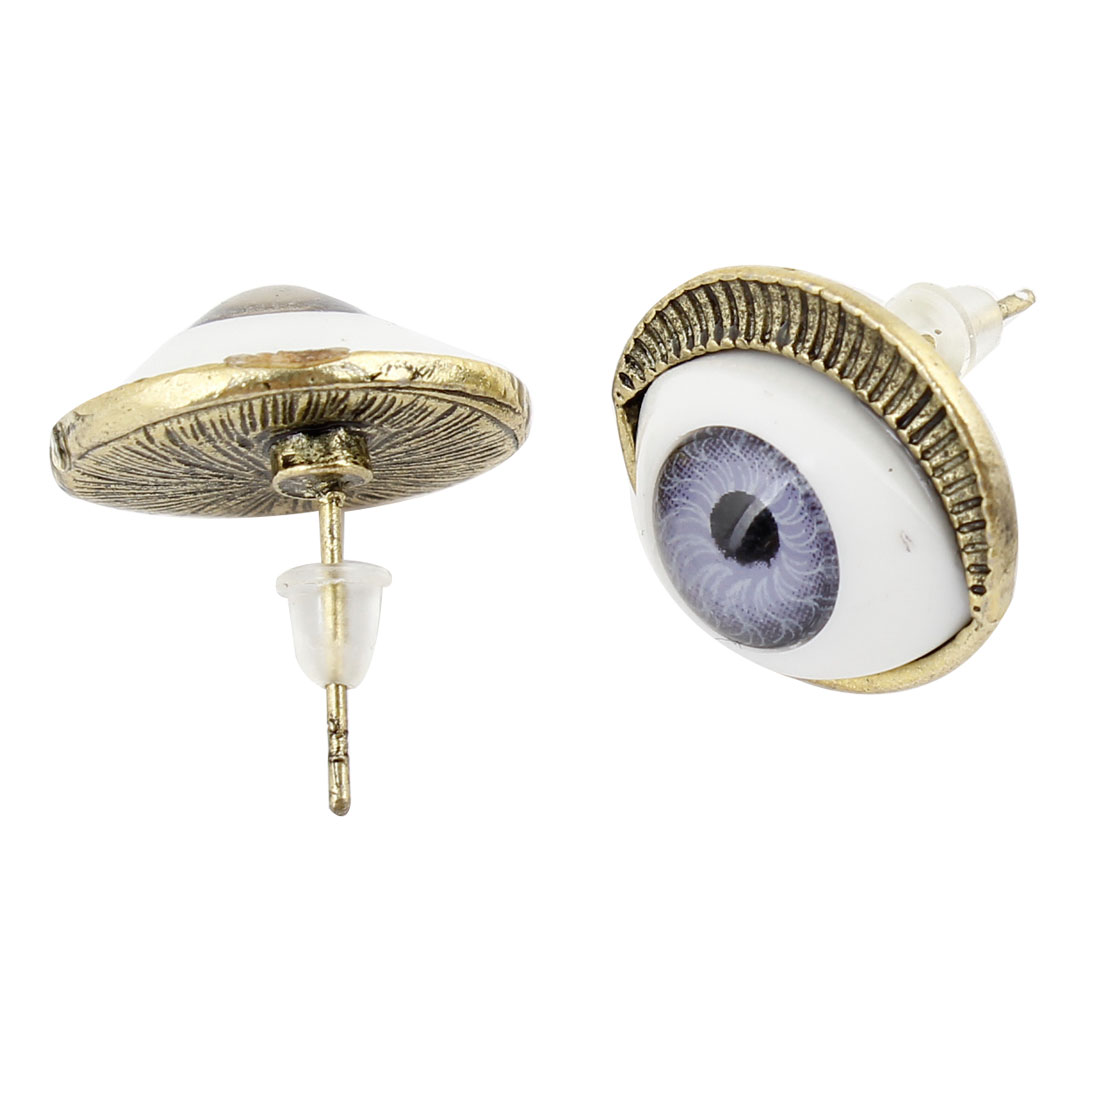 Pair White Bronze Tone Eye Shaped Ear Pin Stud Earrings for Women